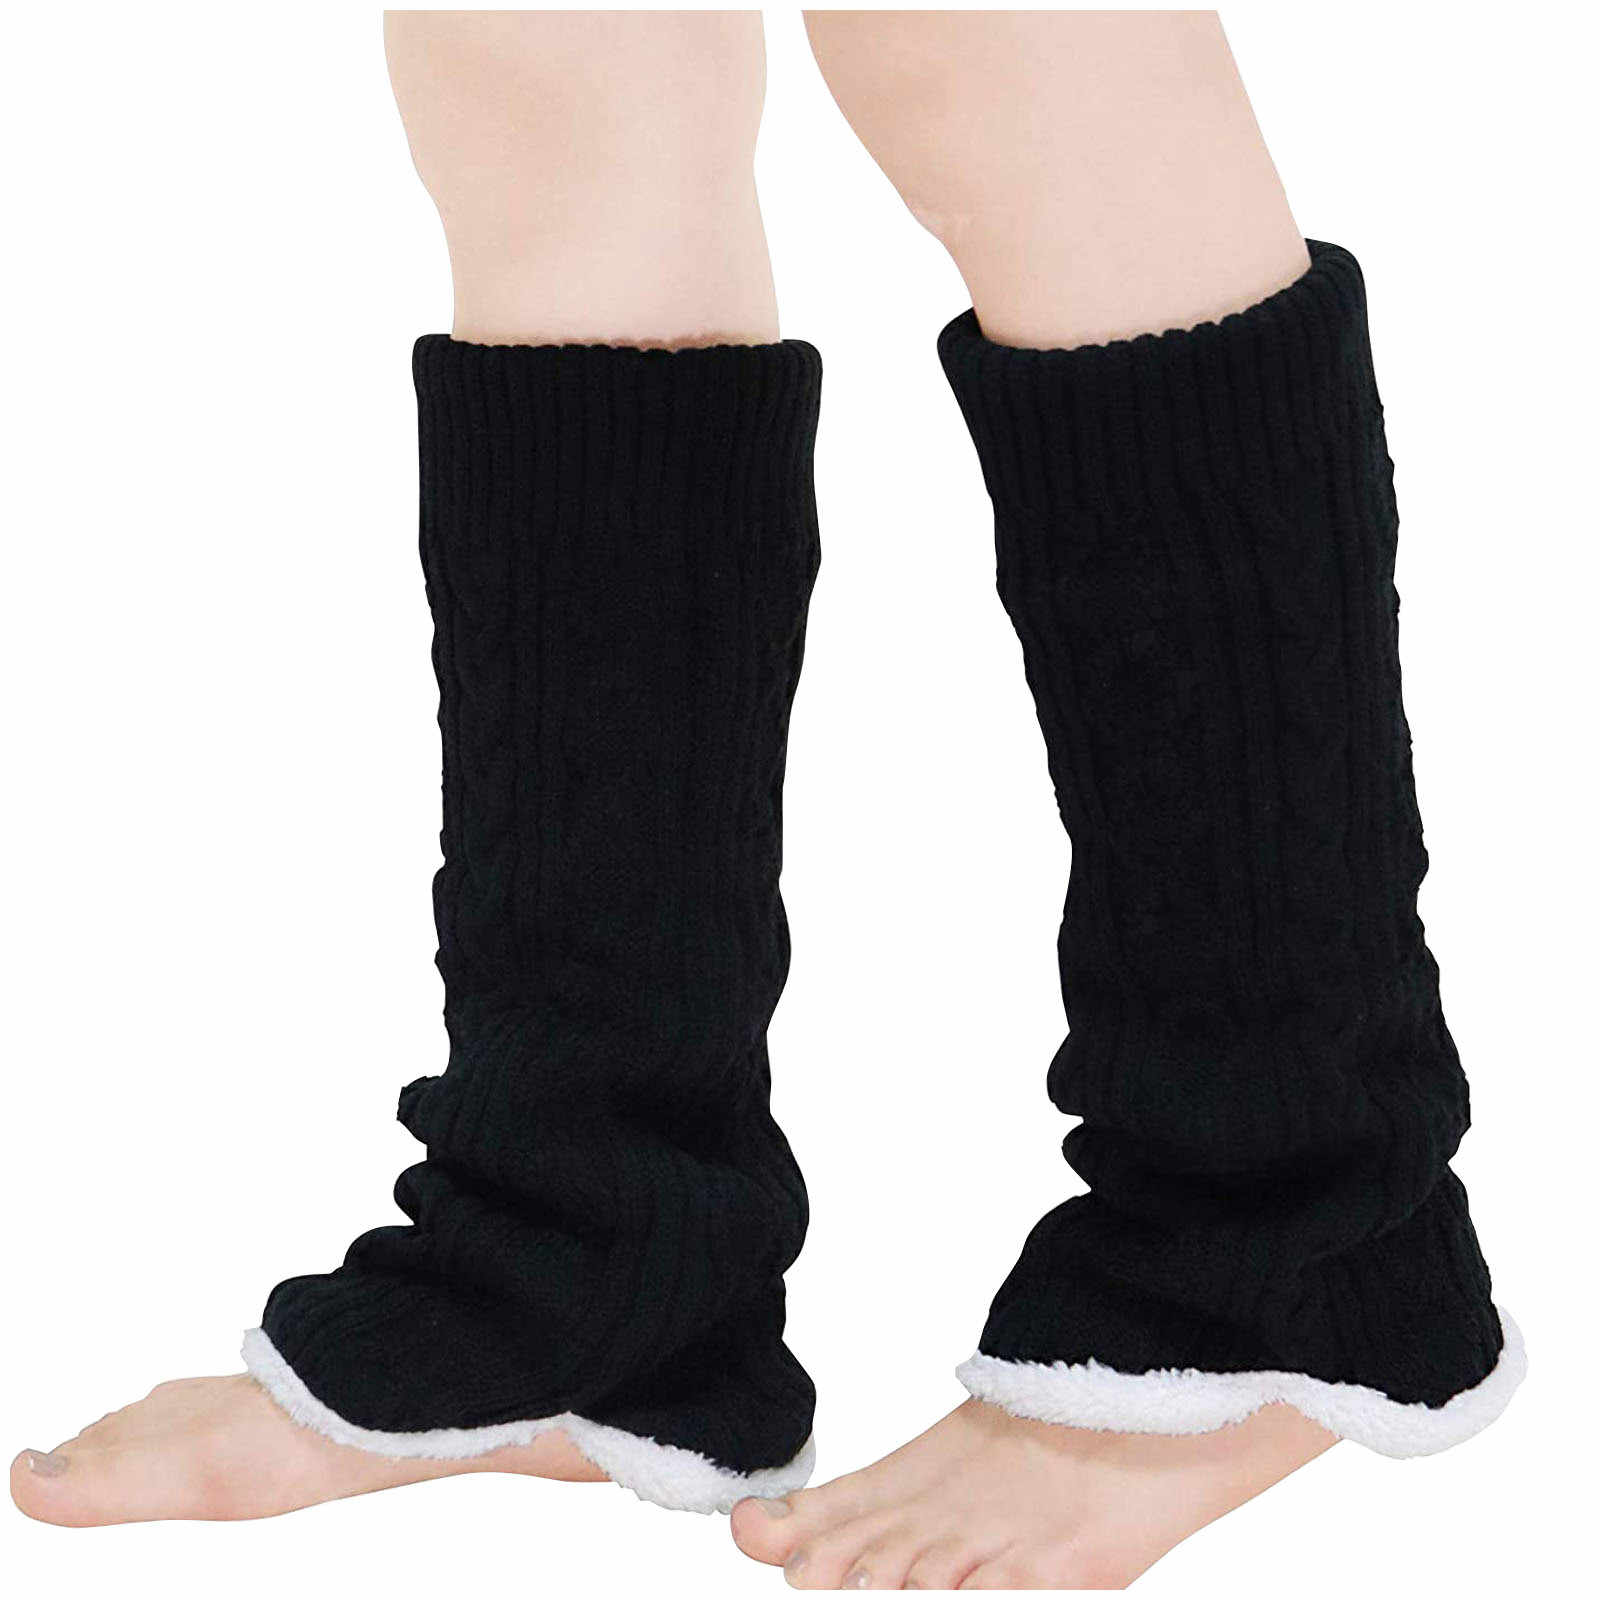 HUAhuako Leg Warmers Autumn Winter Fashion Bowknot Pompom Knit Boot Socks Cuffs Toppers for Kids Girls Outdoor Activities Black